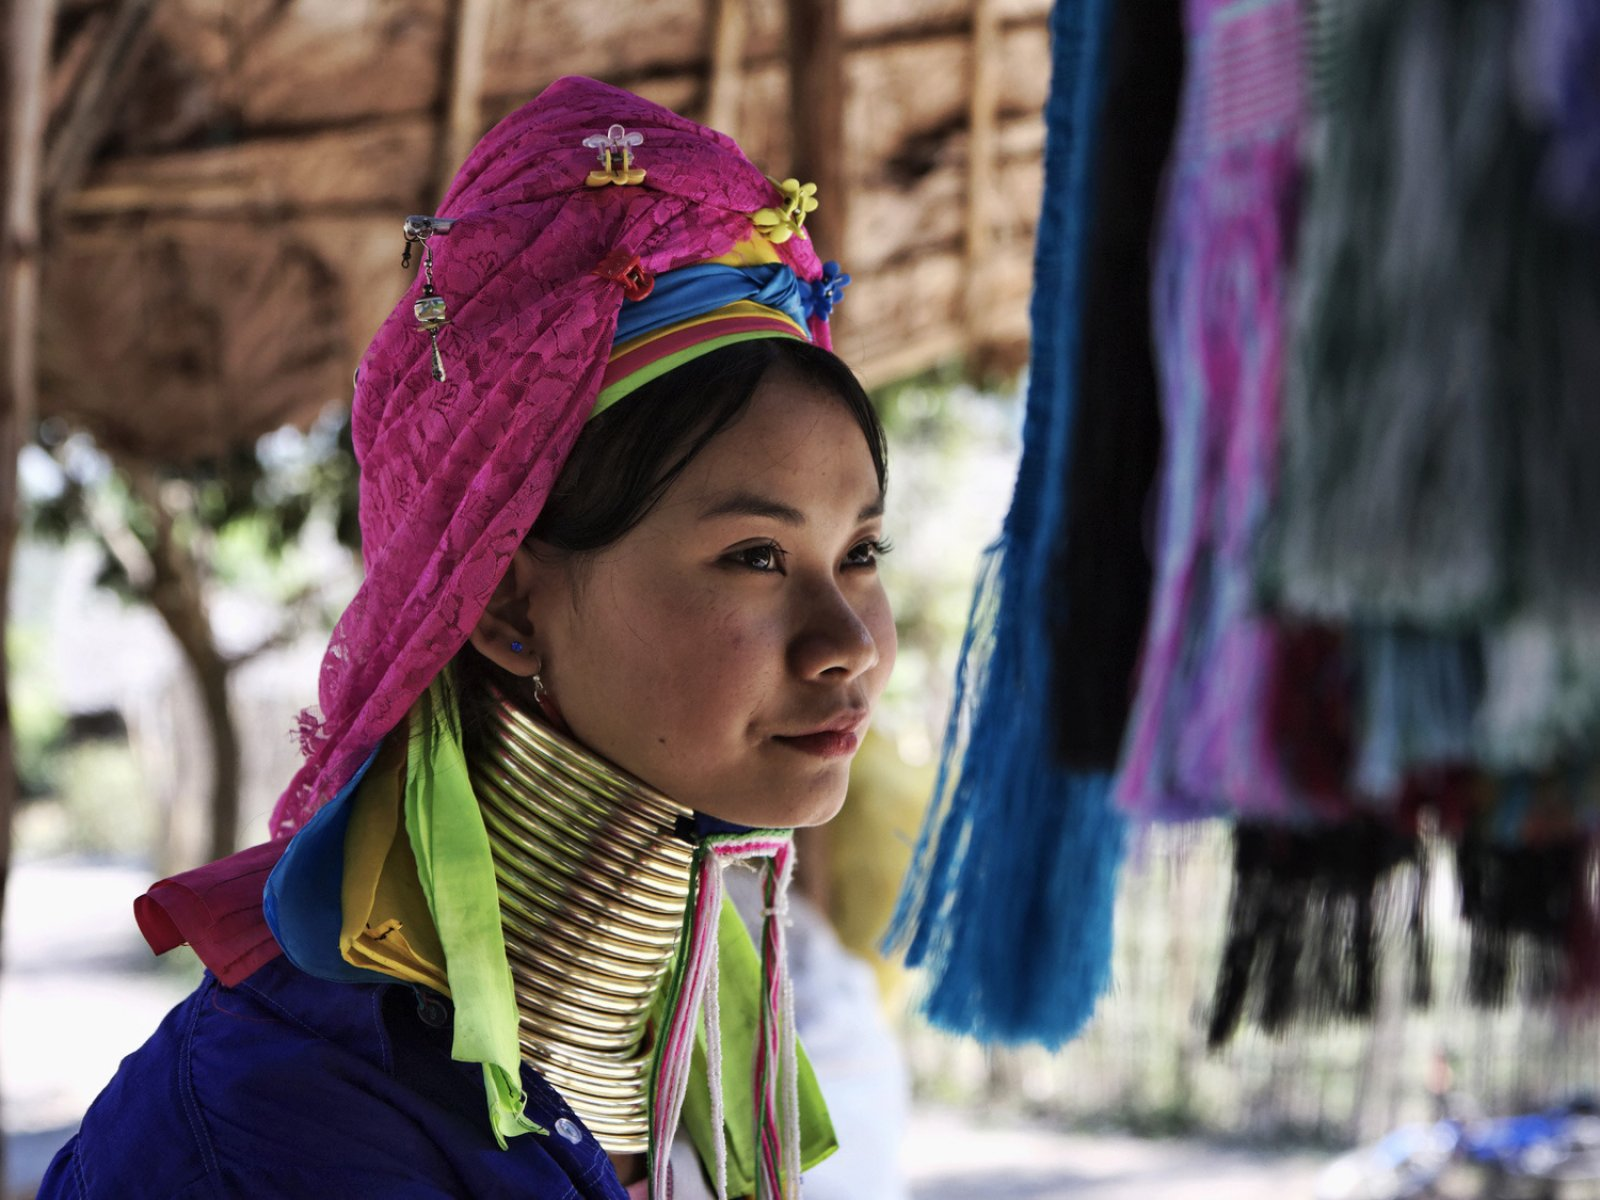 How to visit the village of Long neck Karen people in Pattaya